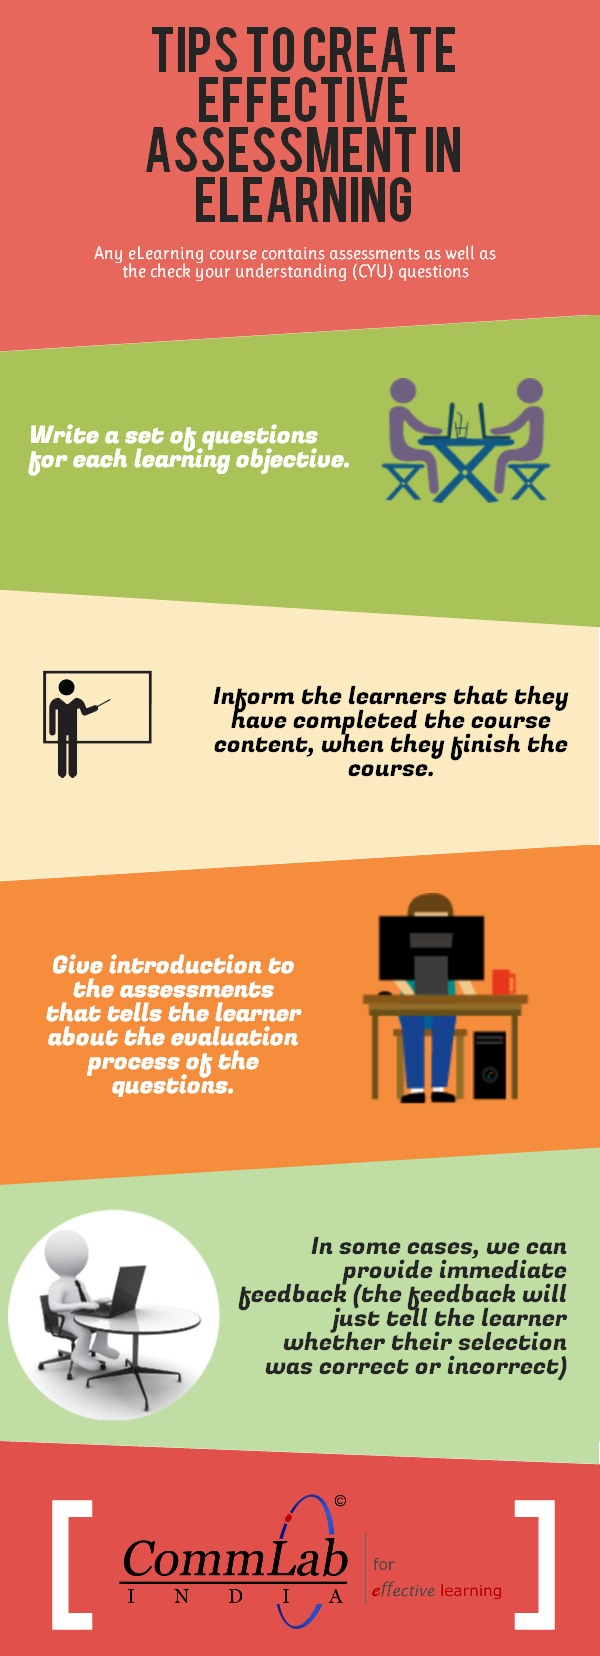 Tips to Create Effective Assessments for your E-learning Course – An Infographic